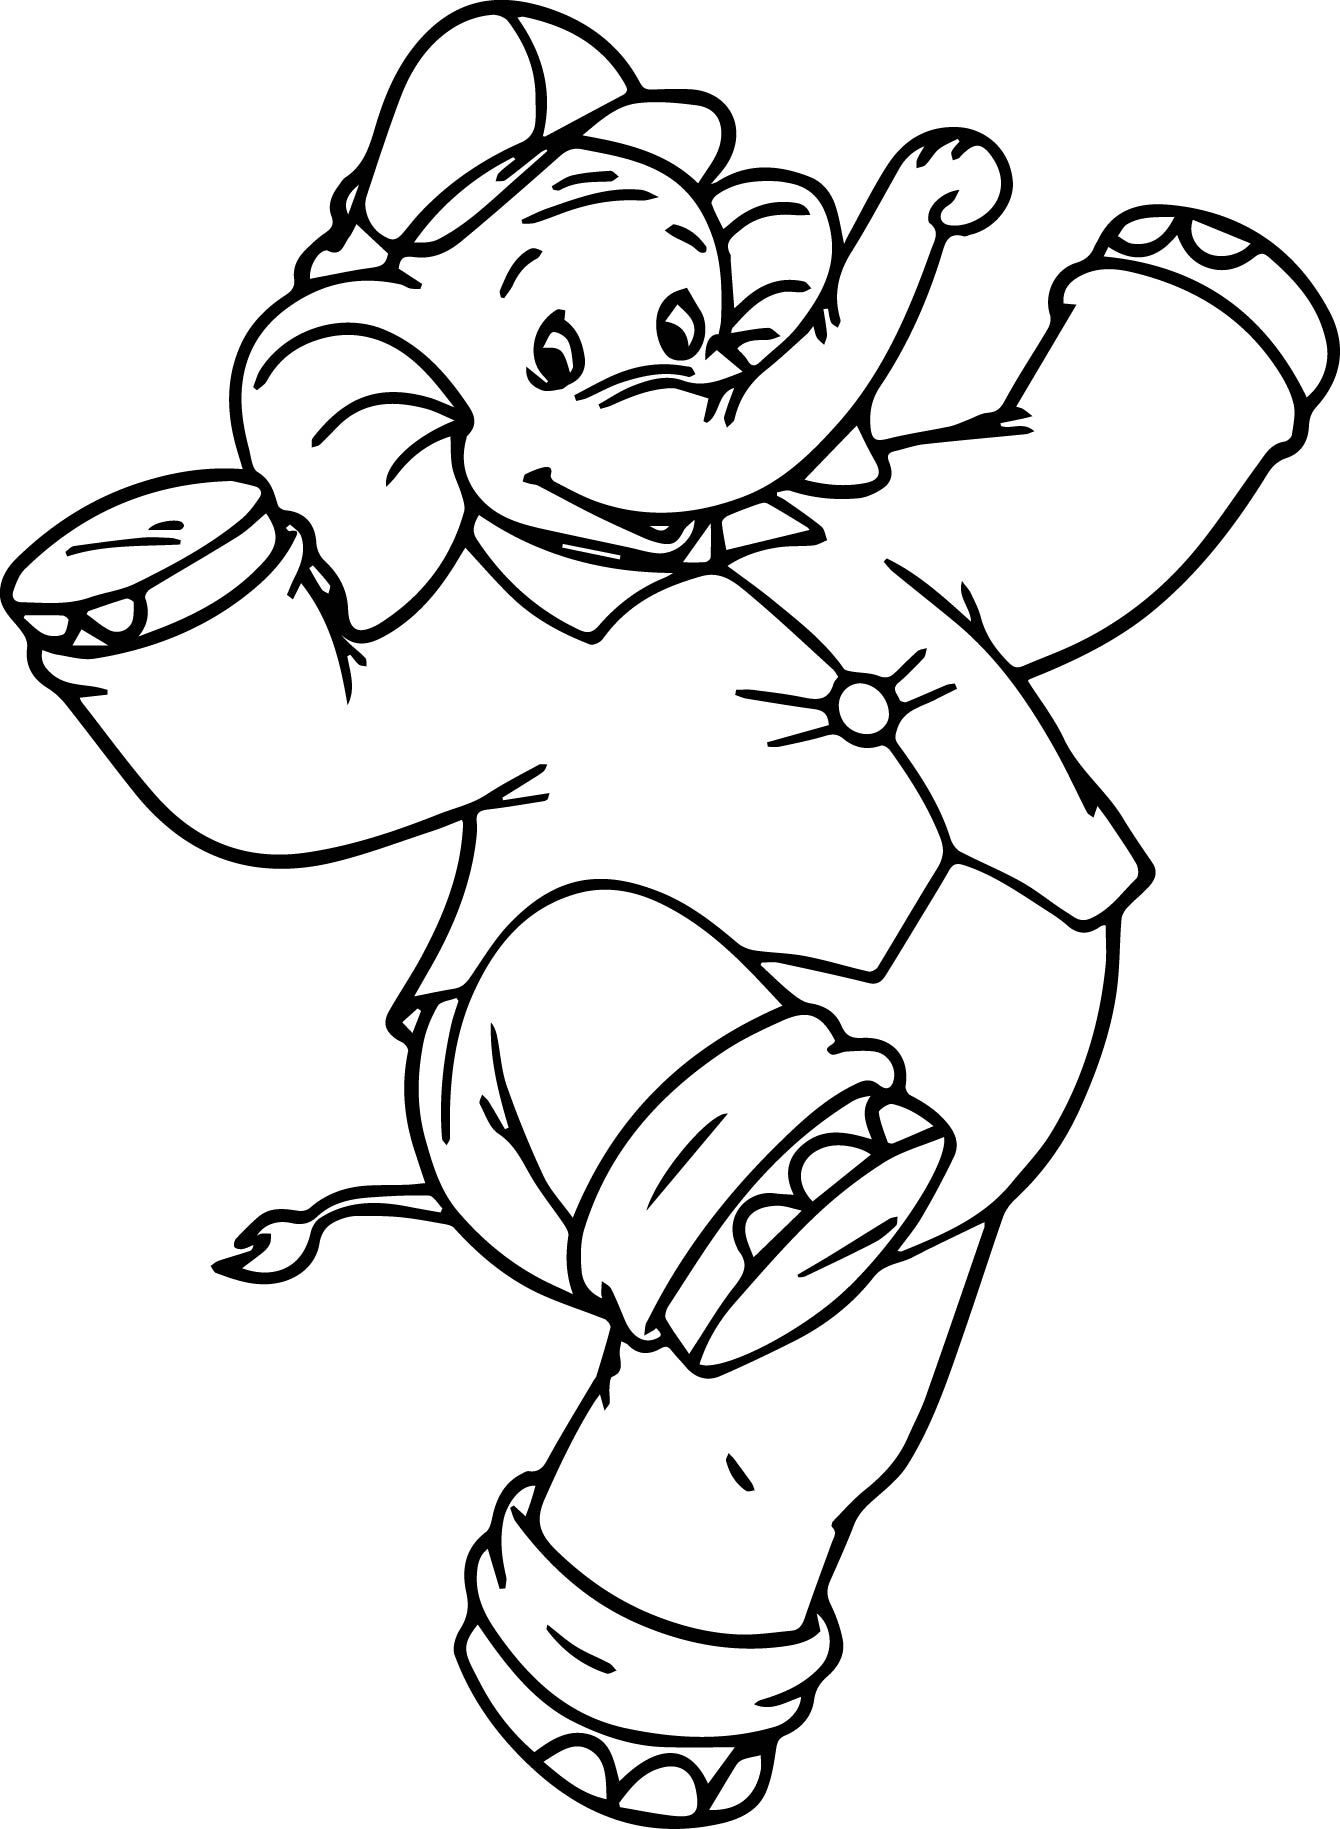 dance color pages - dance amazing elephant coloring page